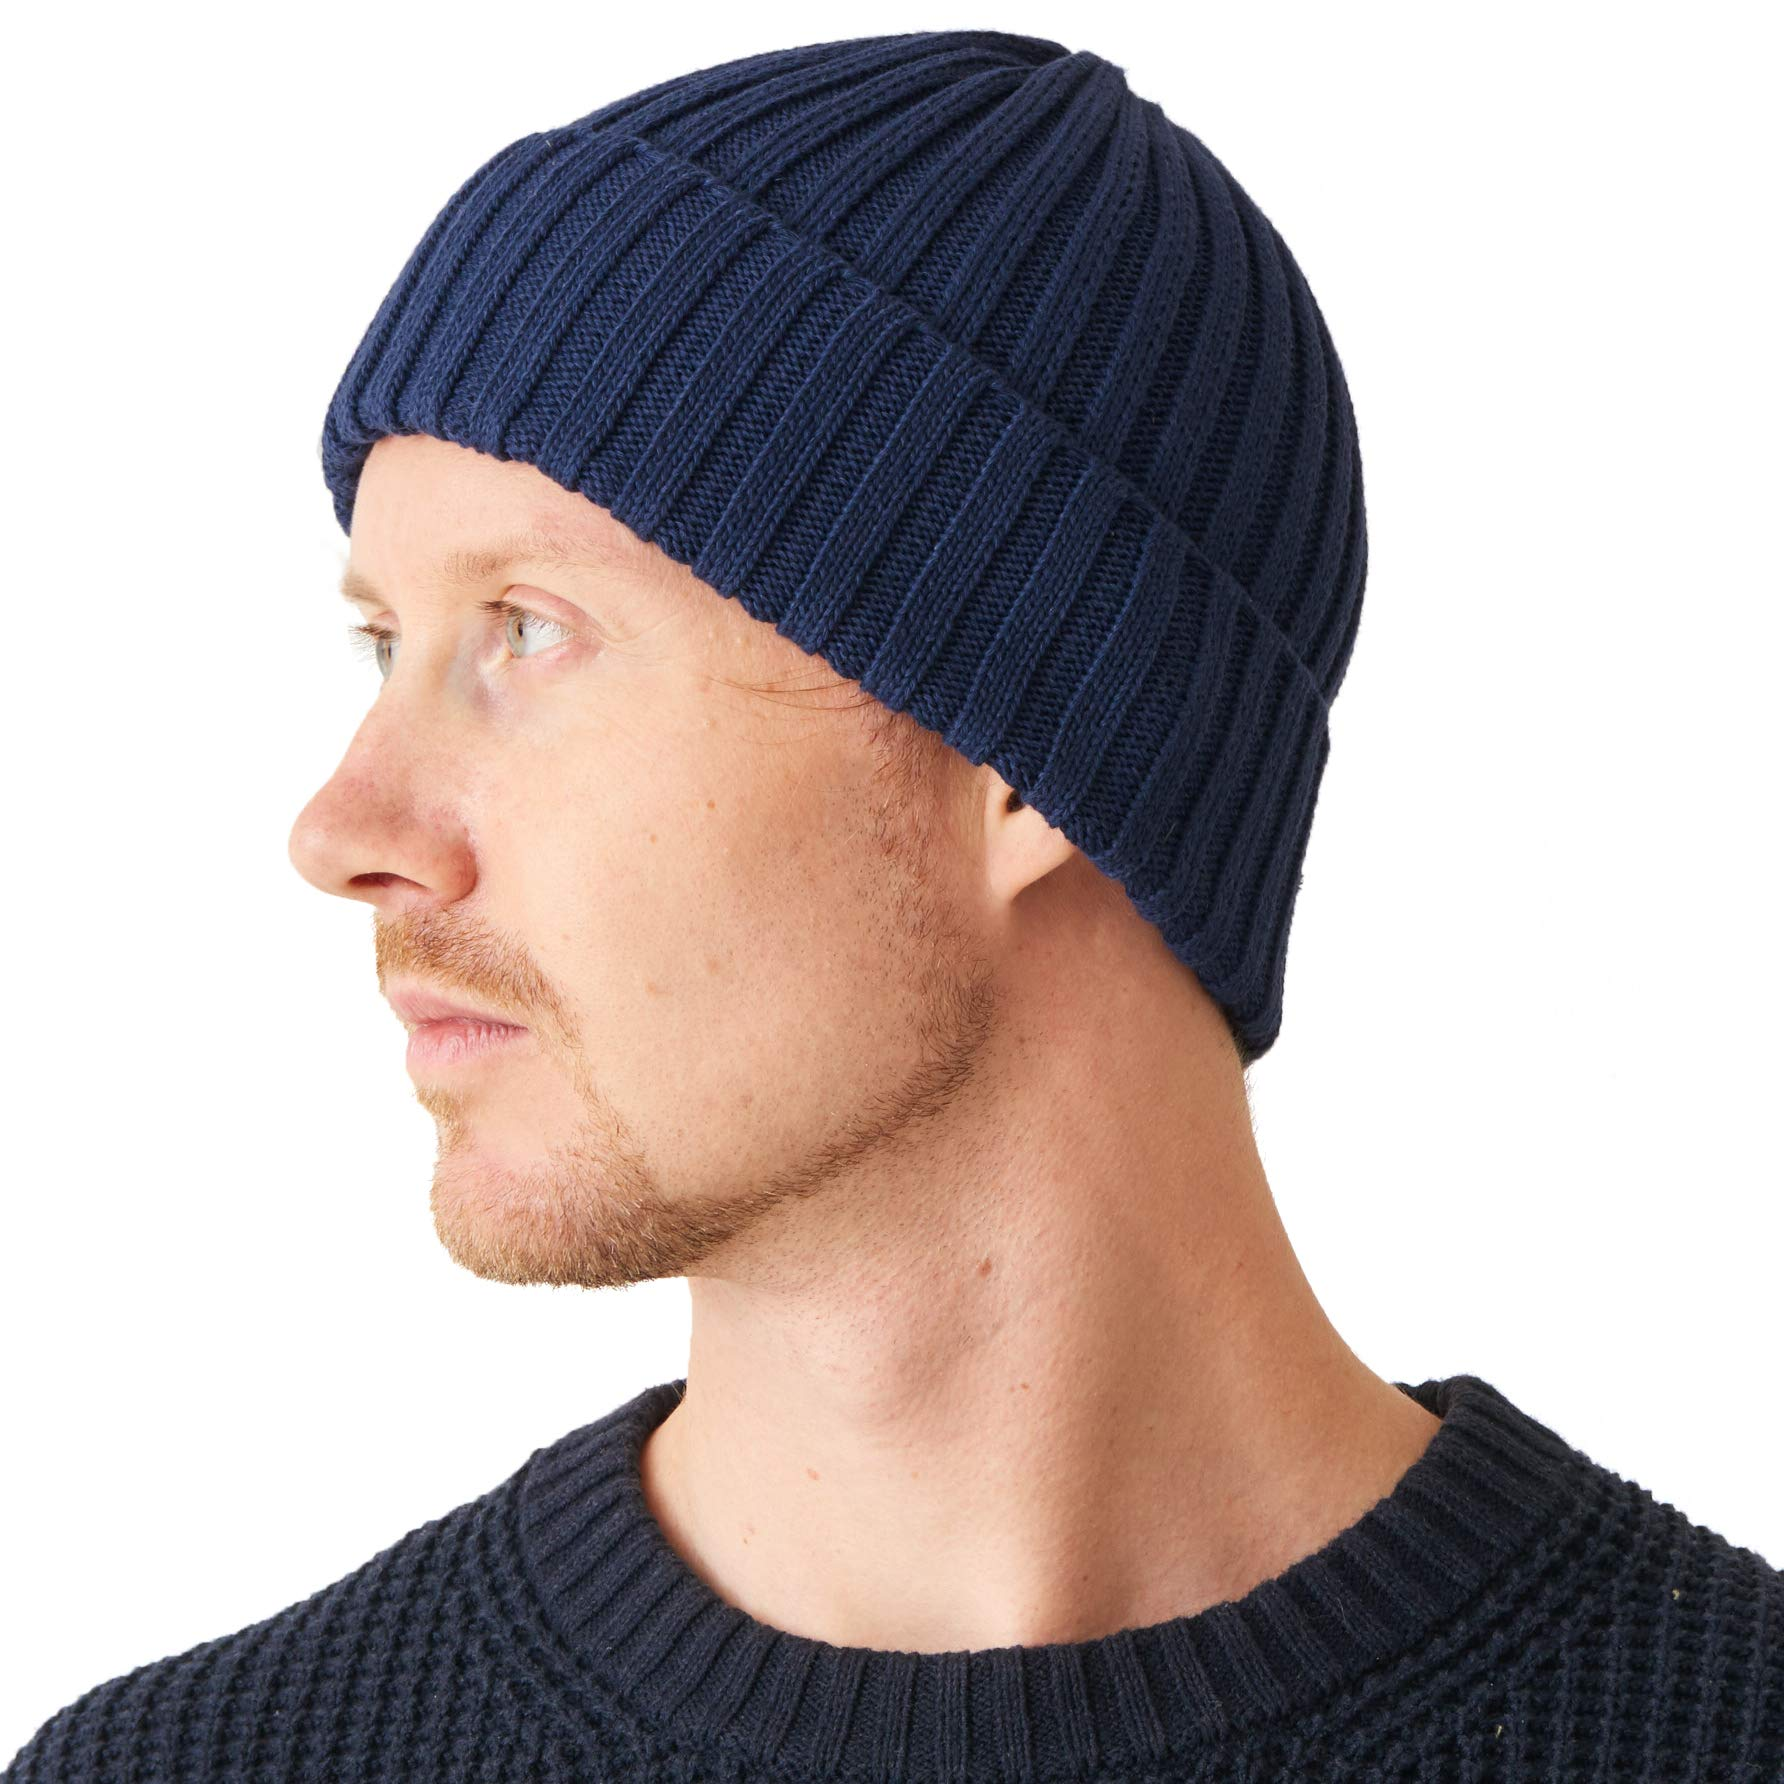 Mens Fisherman s Beanie Hat - 100% Cotton Ribbed Slouch Cap Women Chemo  Knit Winter Summer Simple Classic Design Navy b50b9cbb384d